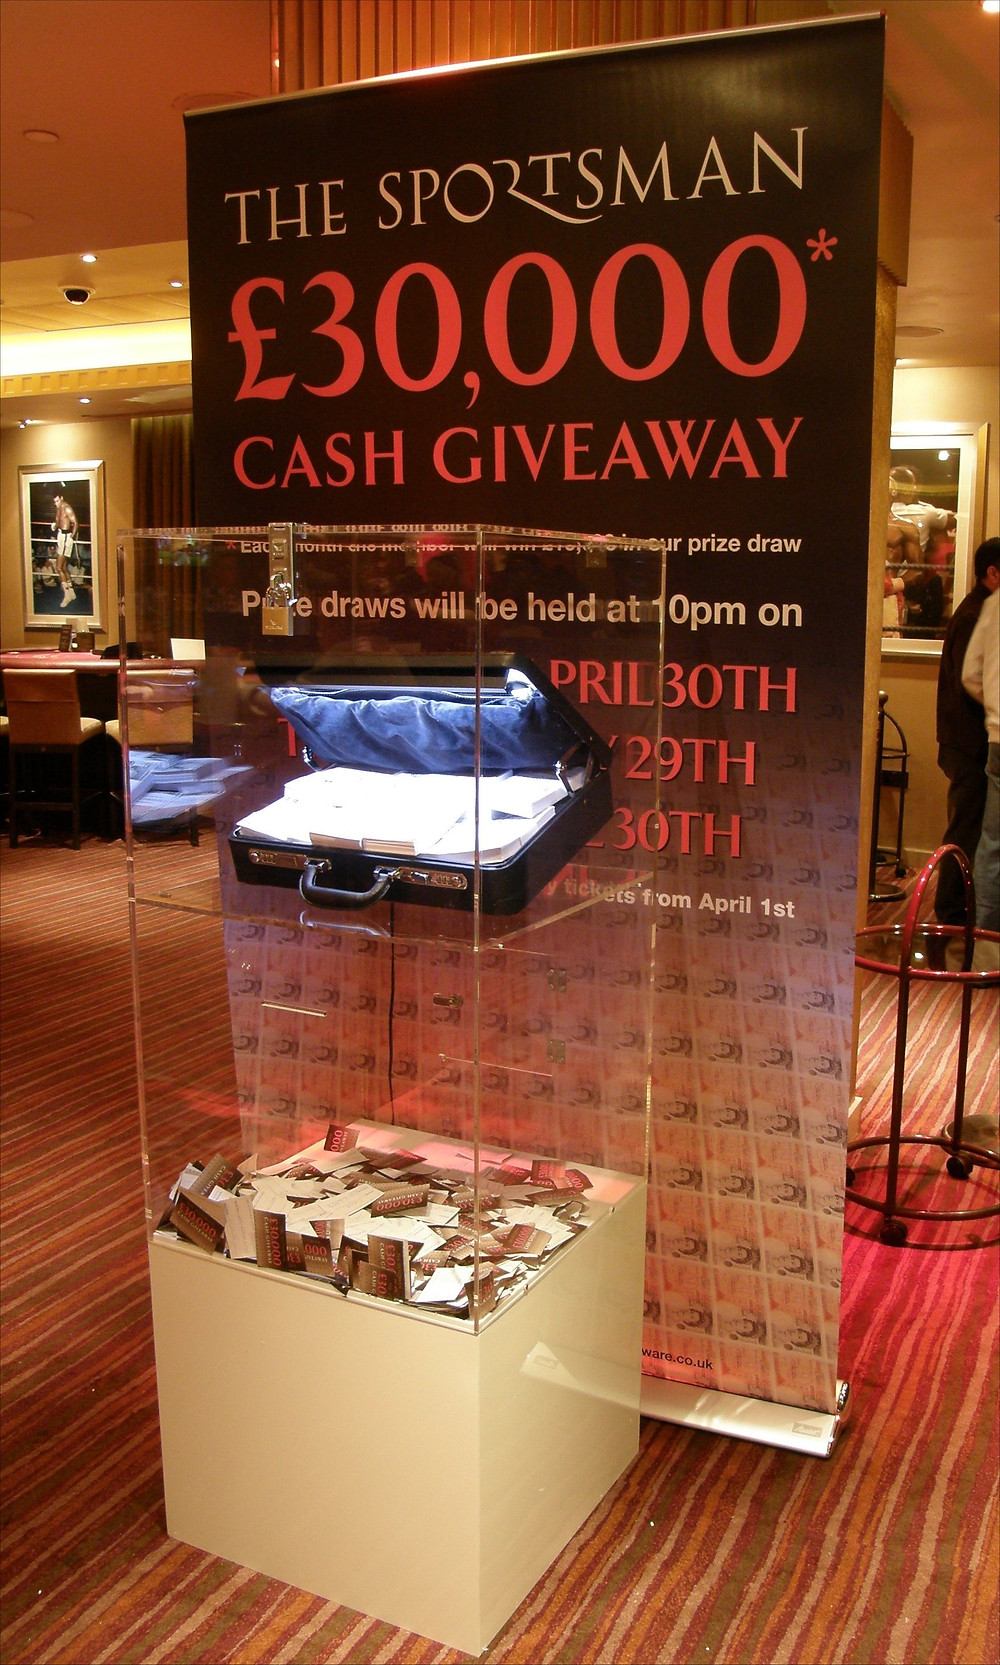 Display piece for a promotional event at the Sportsman Casino for London Clubs International